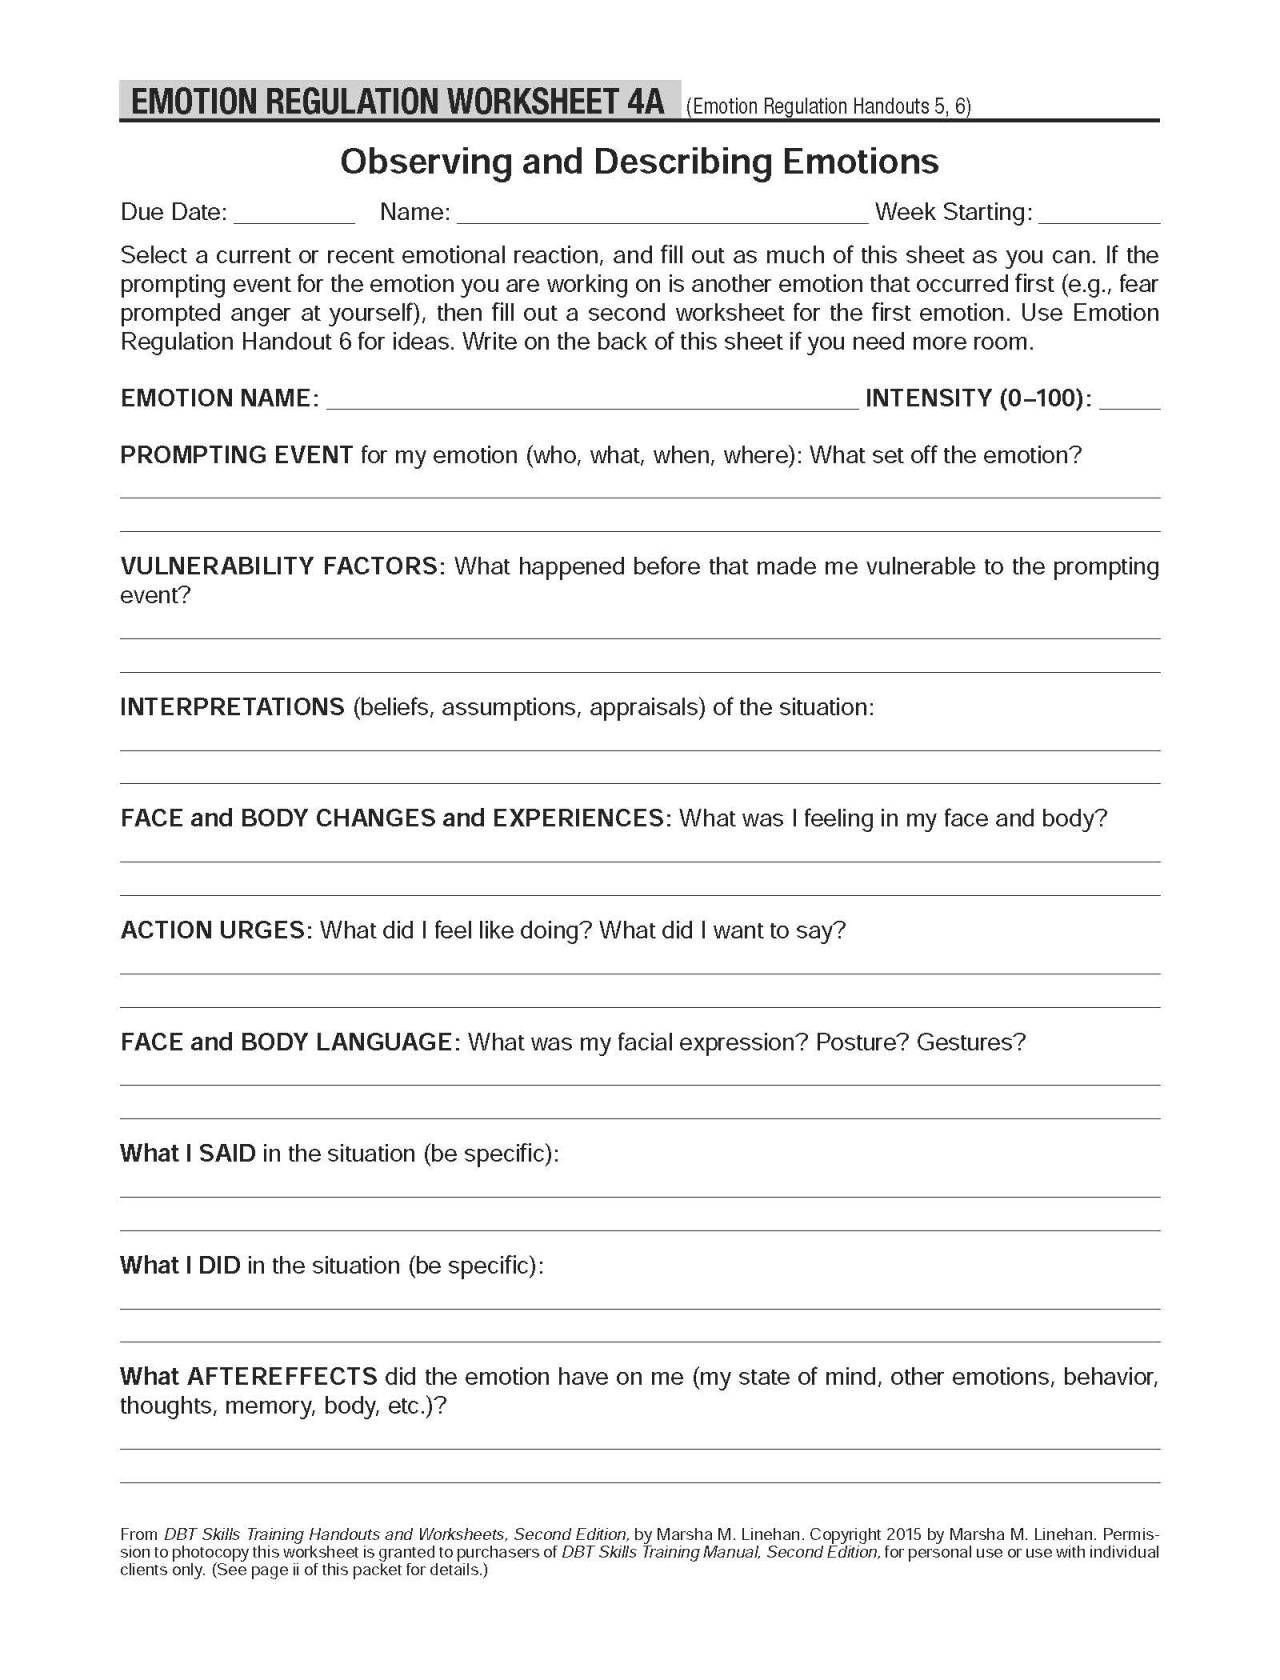 codependency therapy worksheets pdf dbt self help resources observing and describing emotions of codependency therapy worksheets pdf